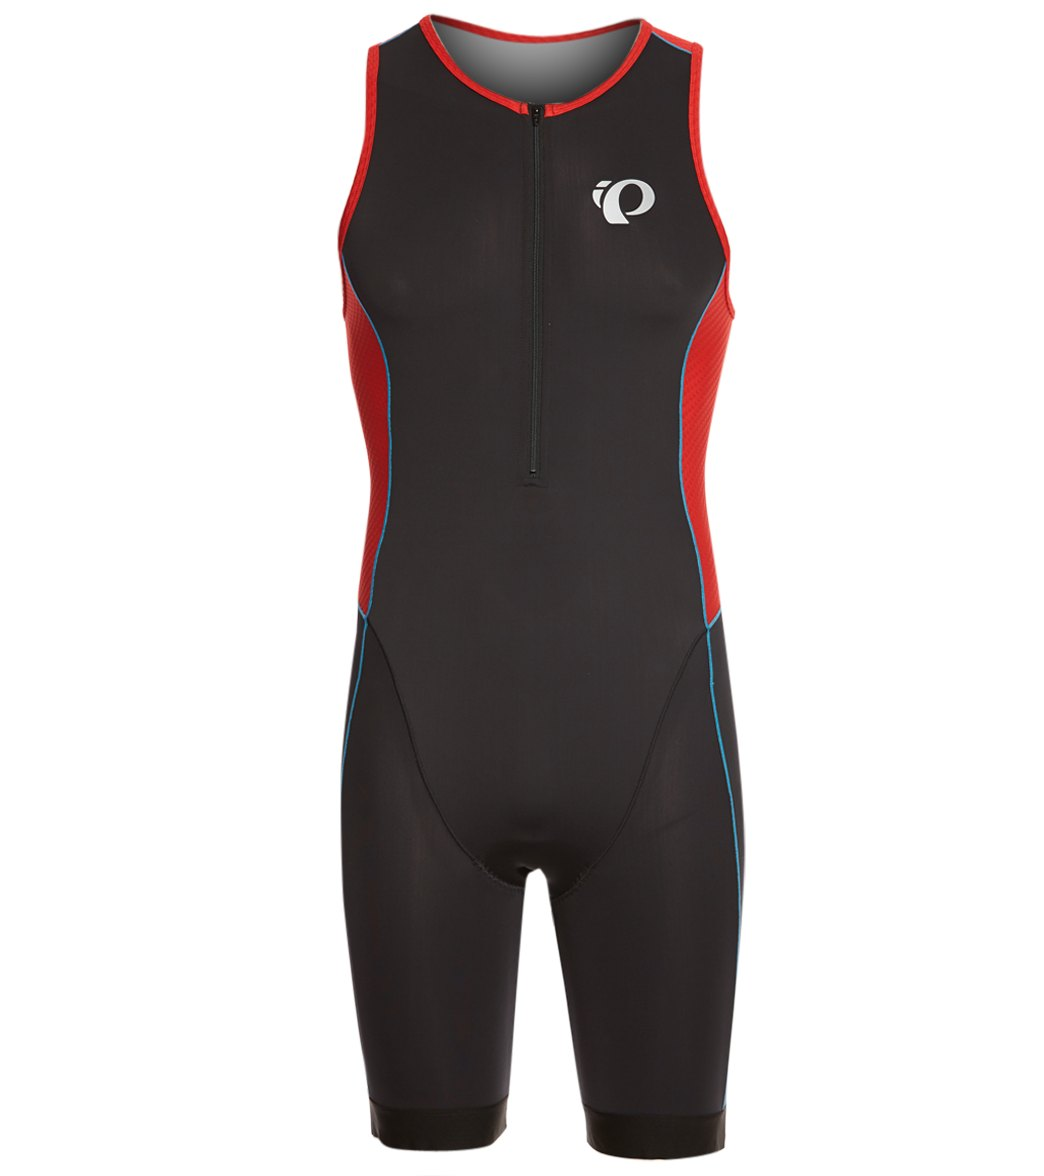 b94e219b3e99 Pearl Izumi Men s Elite Pursuit Tri Suit at SwimOutlet.com - Free ...